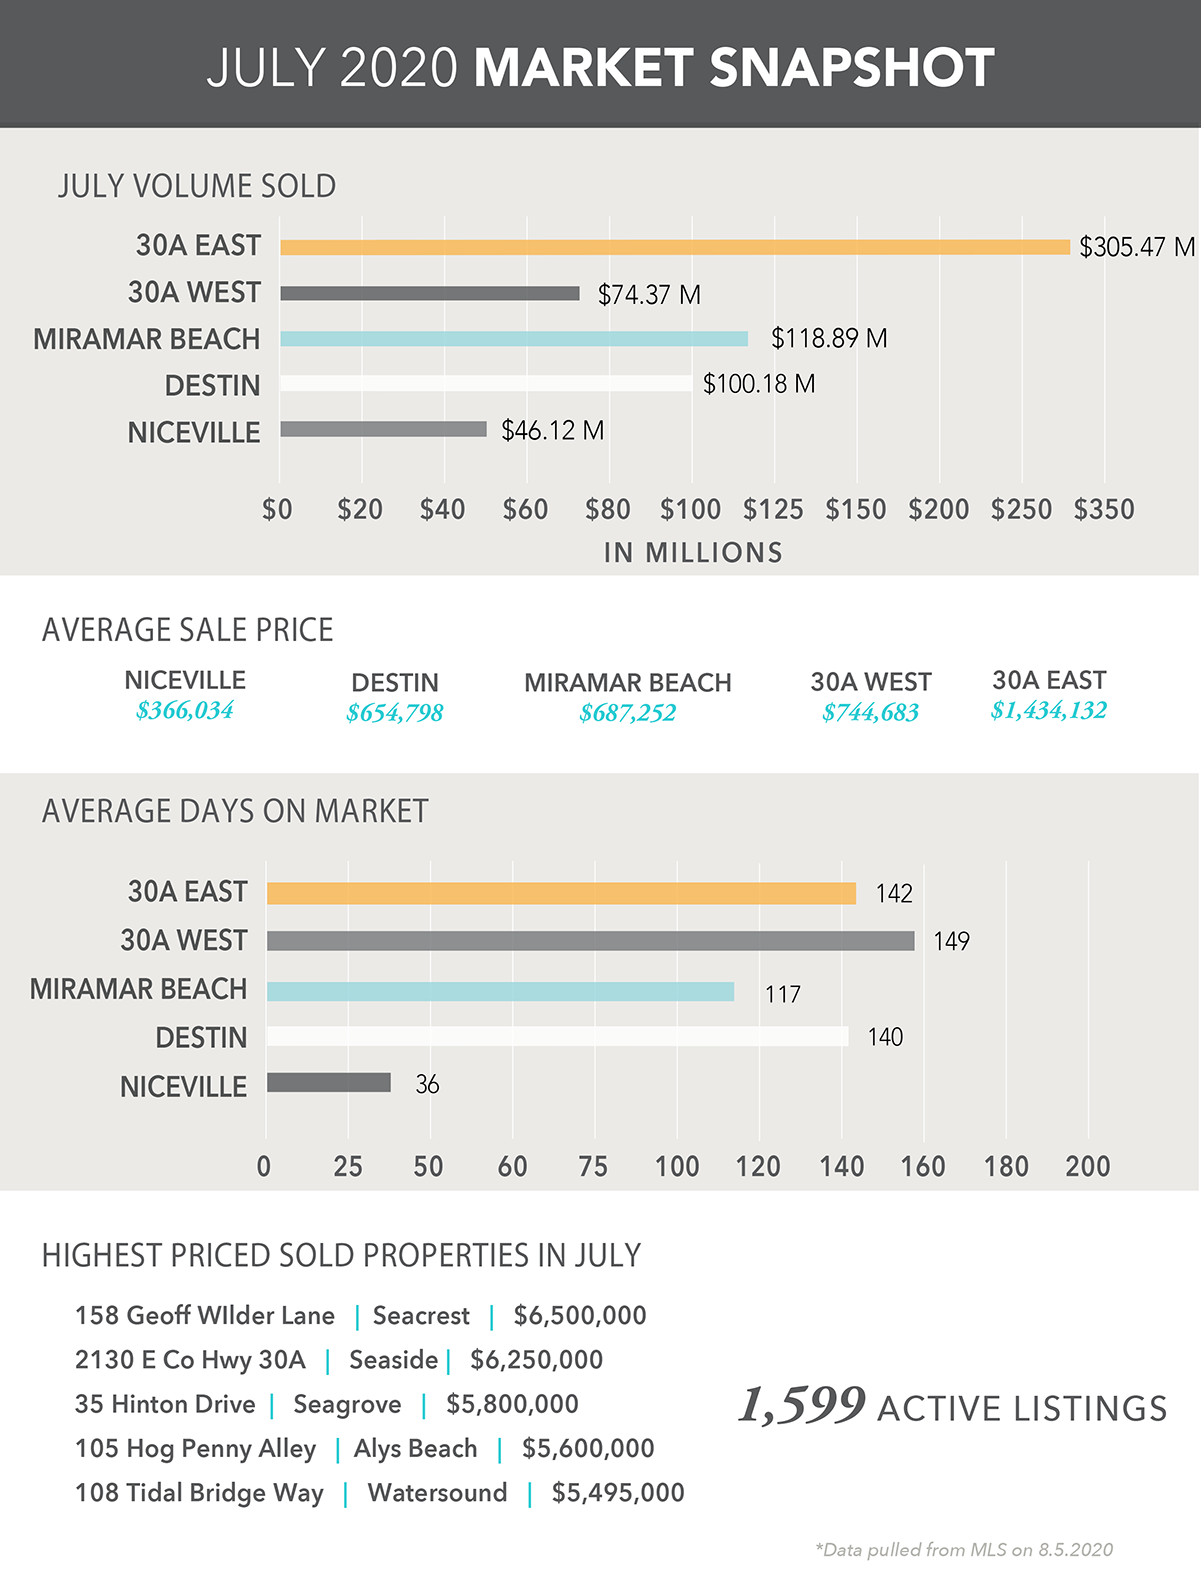 July 2020 Market Snapshot Infographic